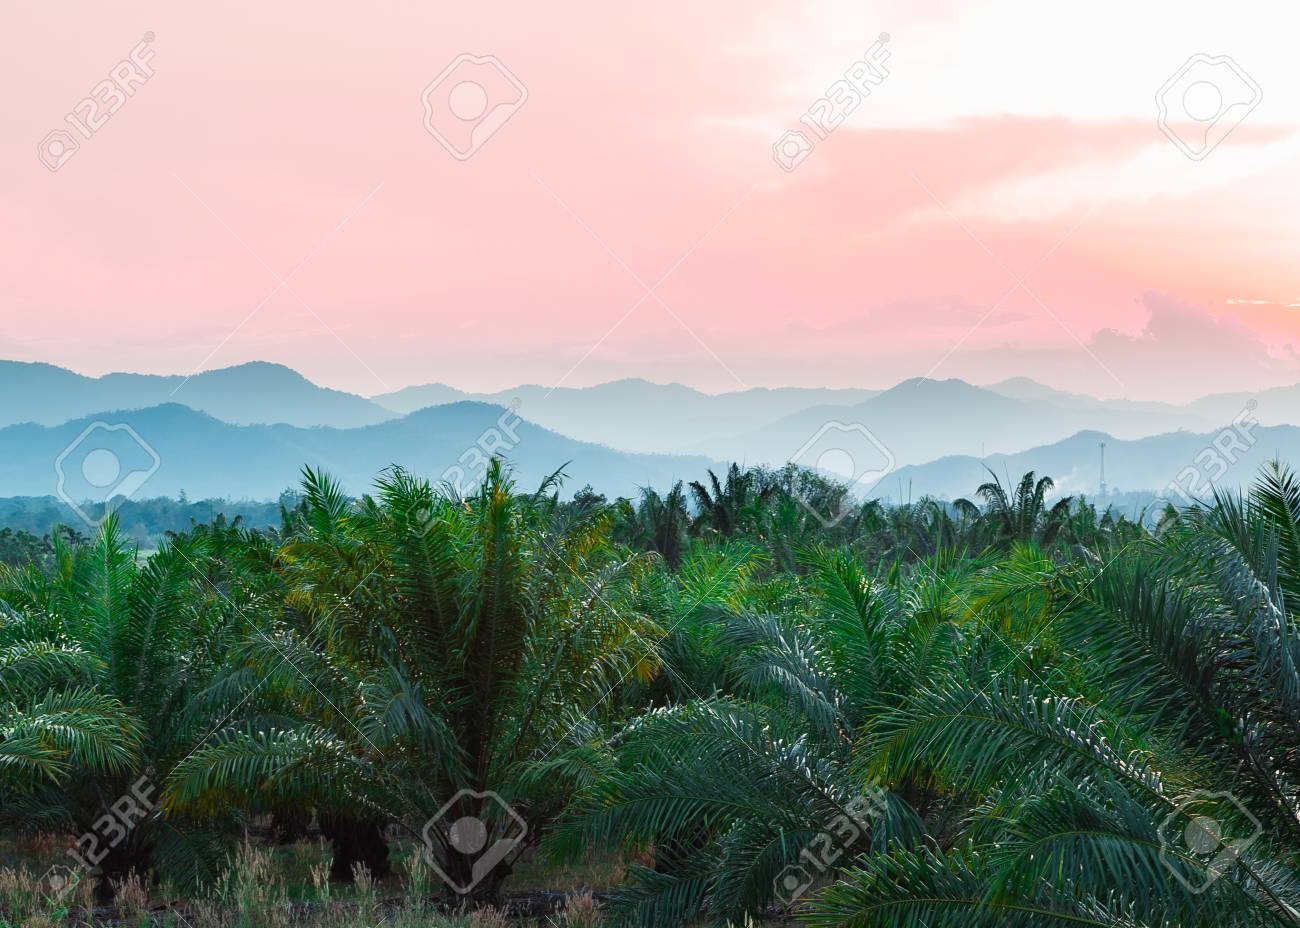 Tropical background of palm trees against mountain and twilight sky. - 105338141